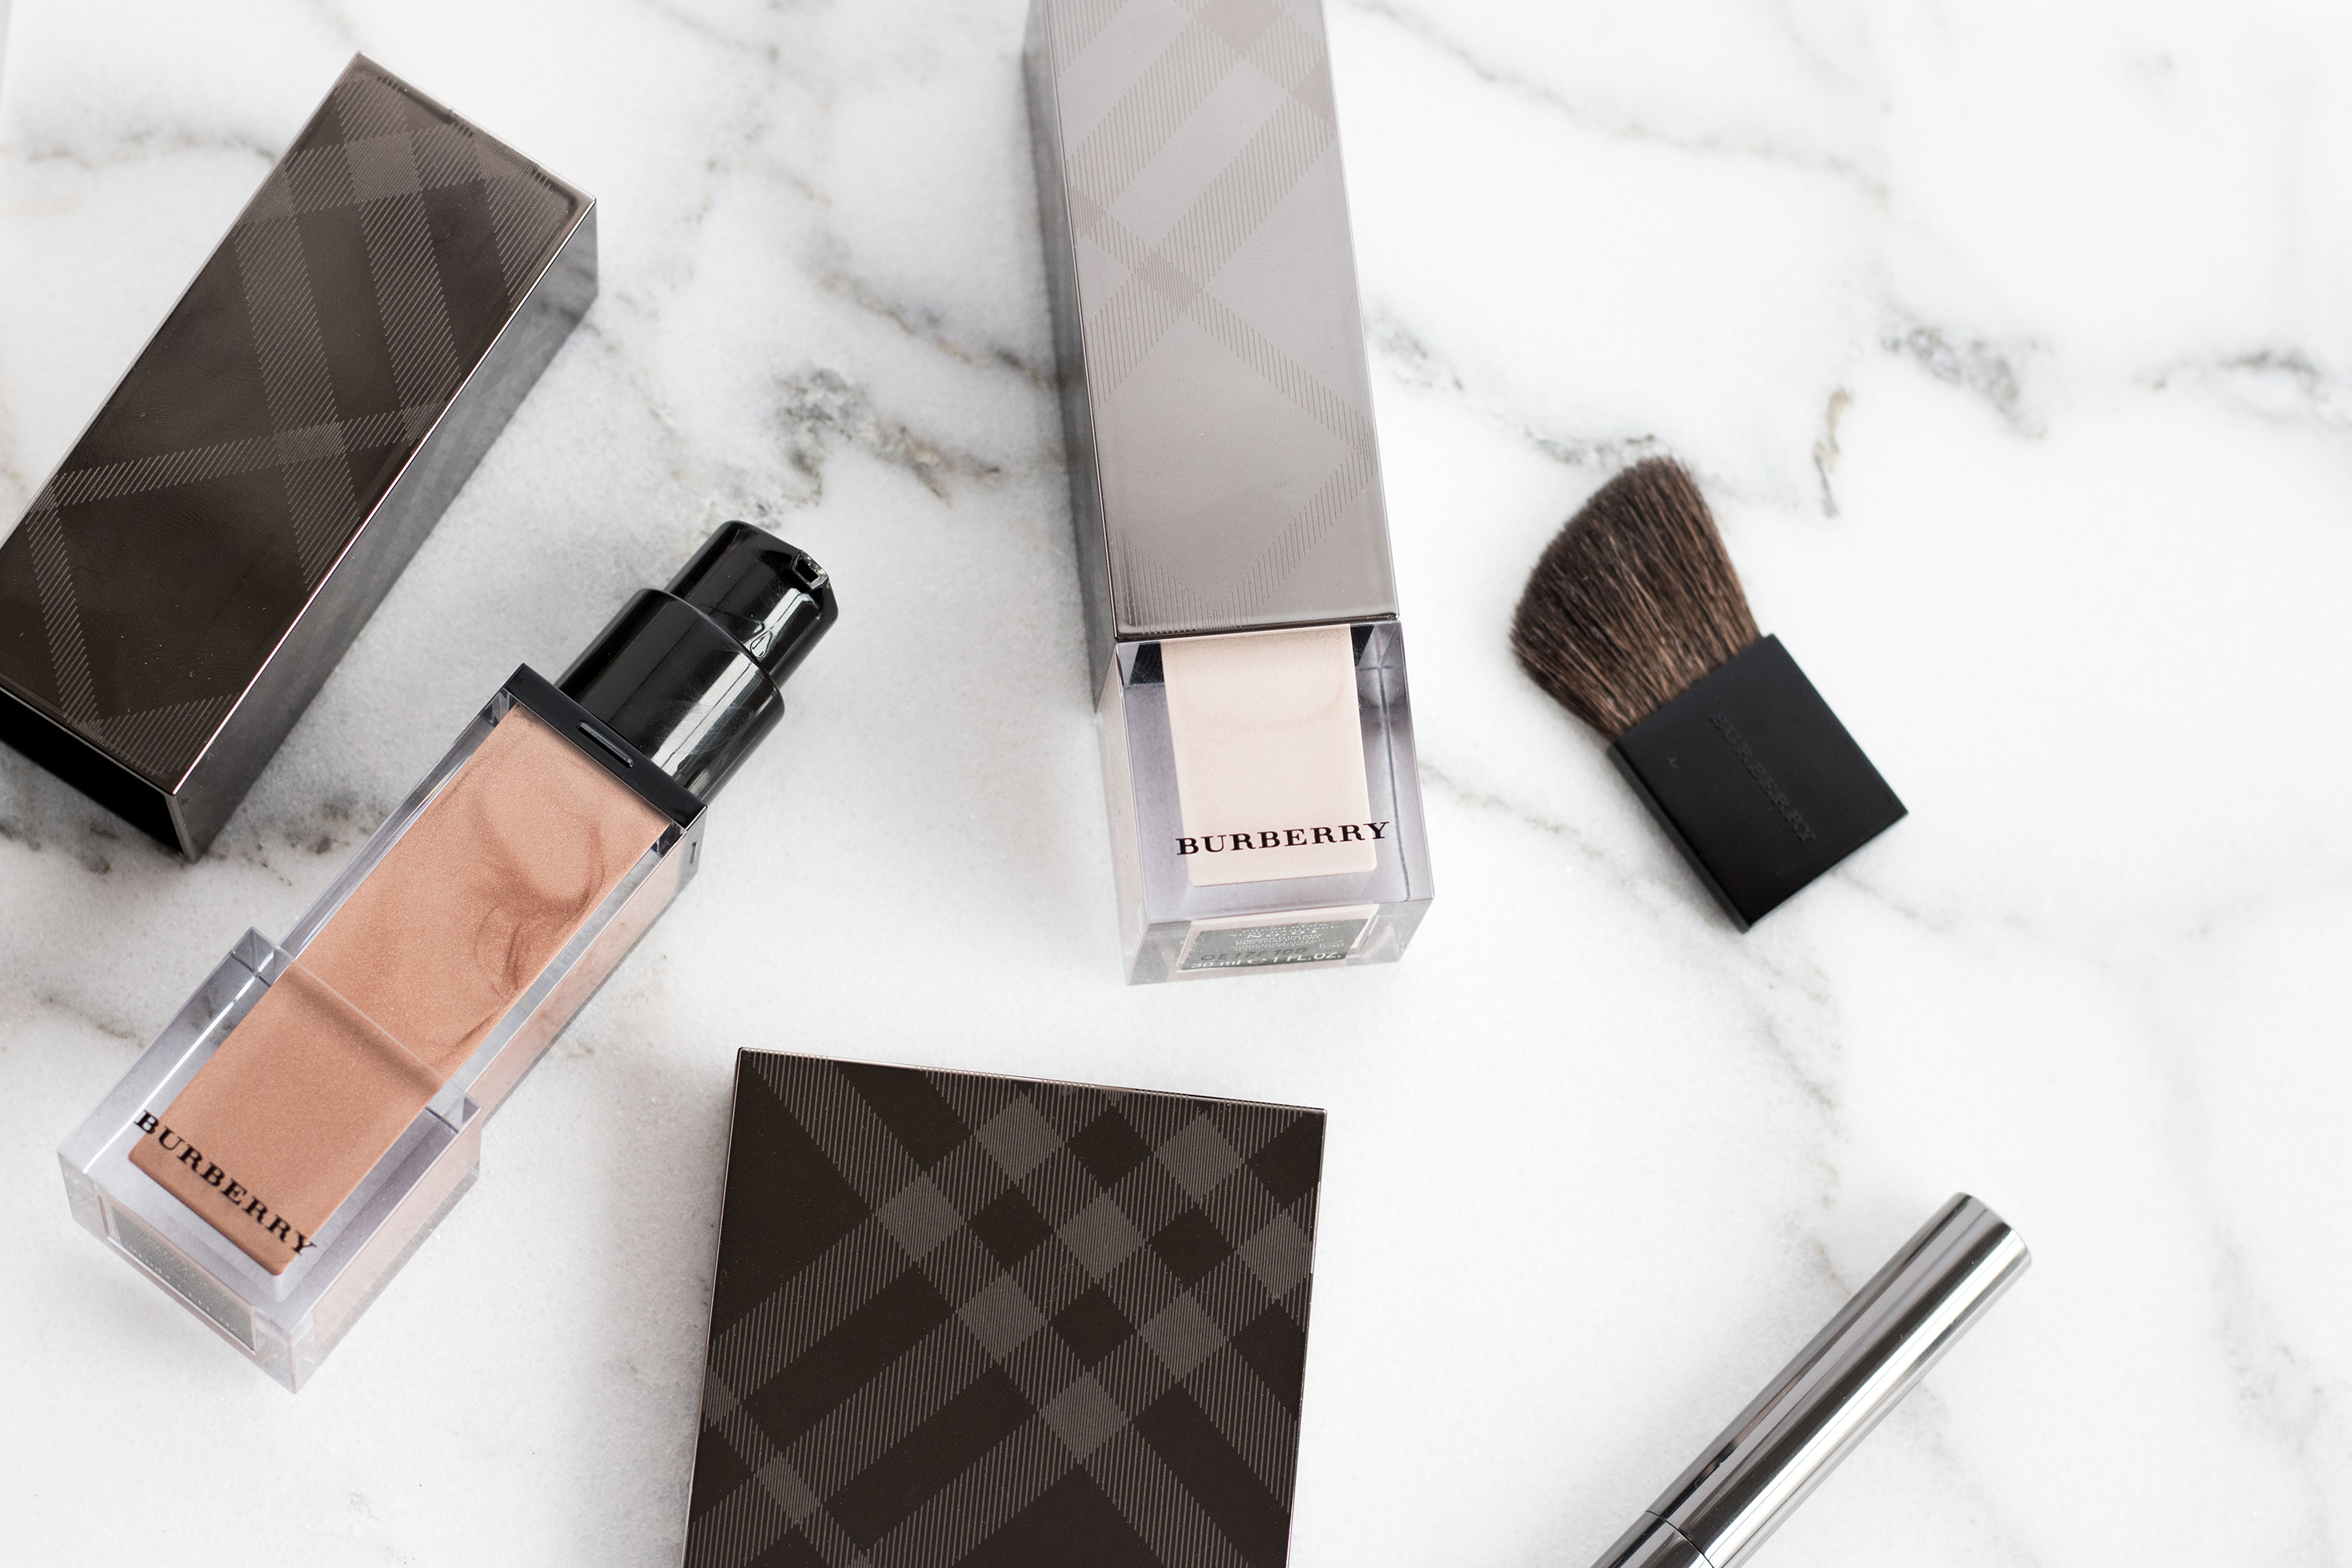 Burberry Fresh Glow highlighting pen, highlighter in rose gold, and luminous base